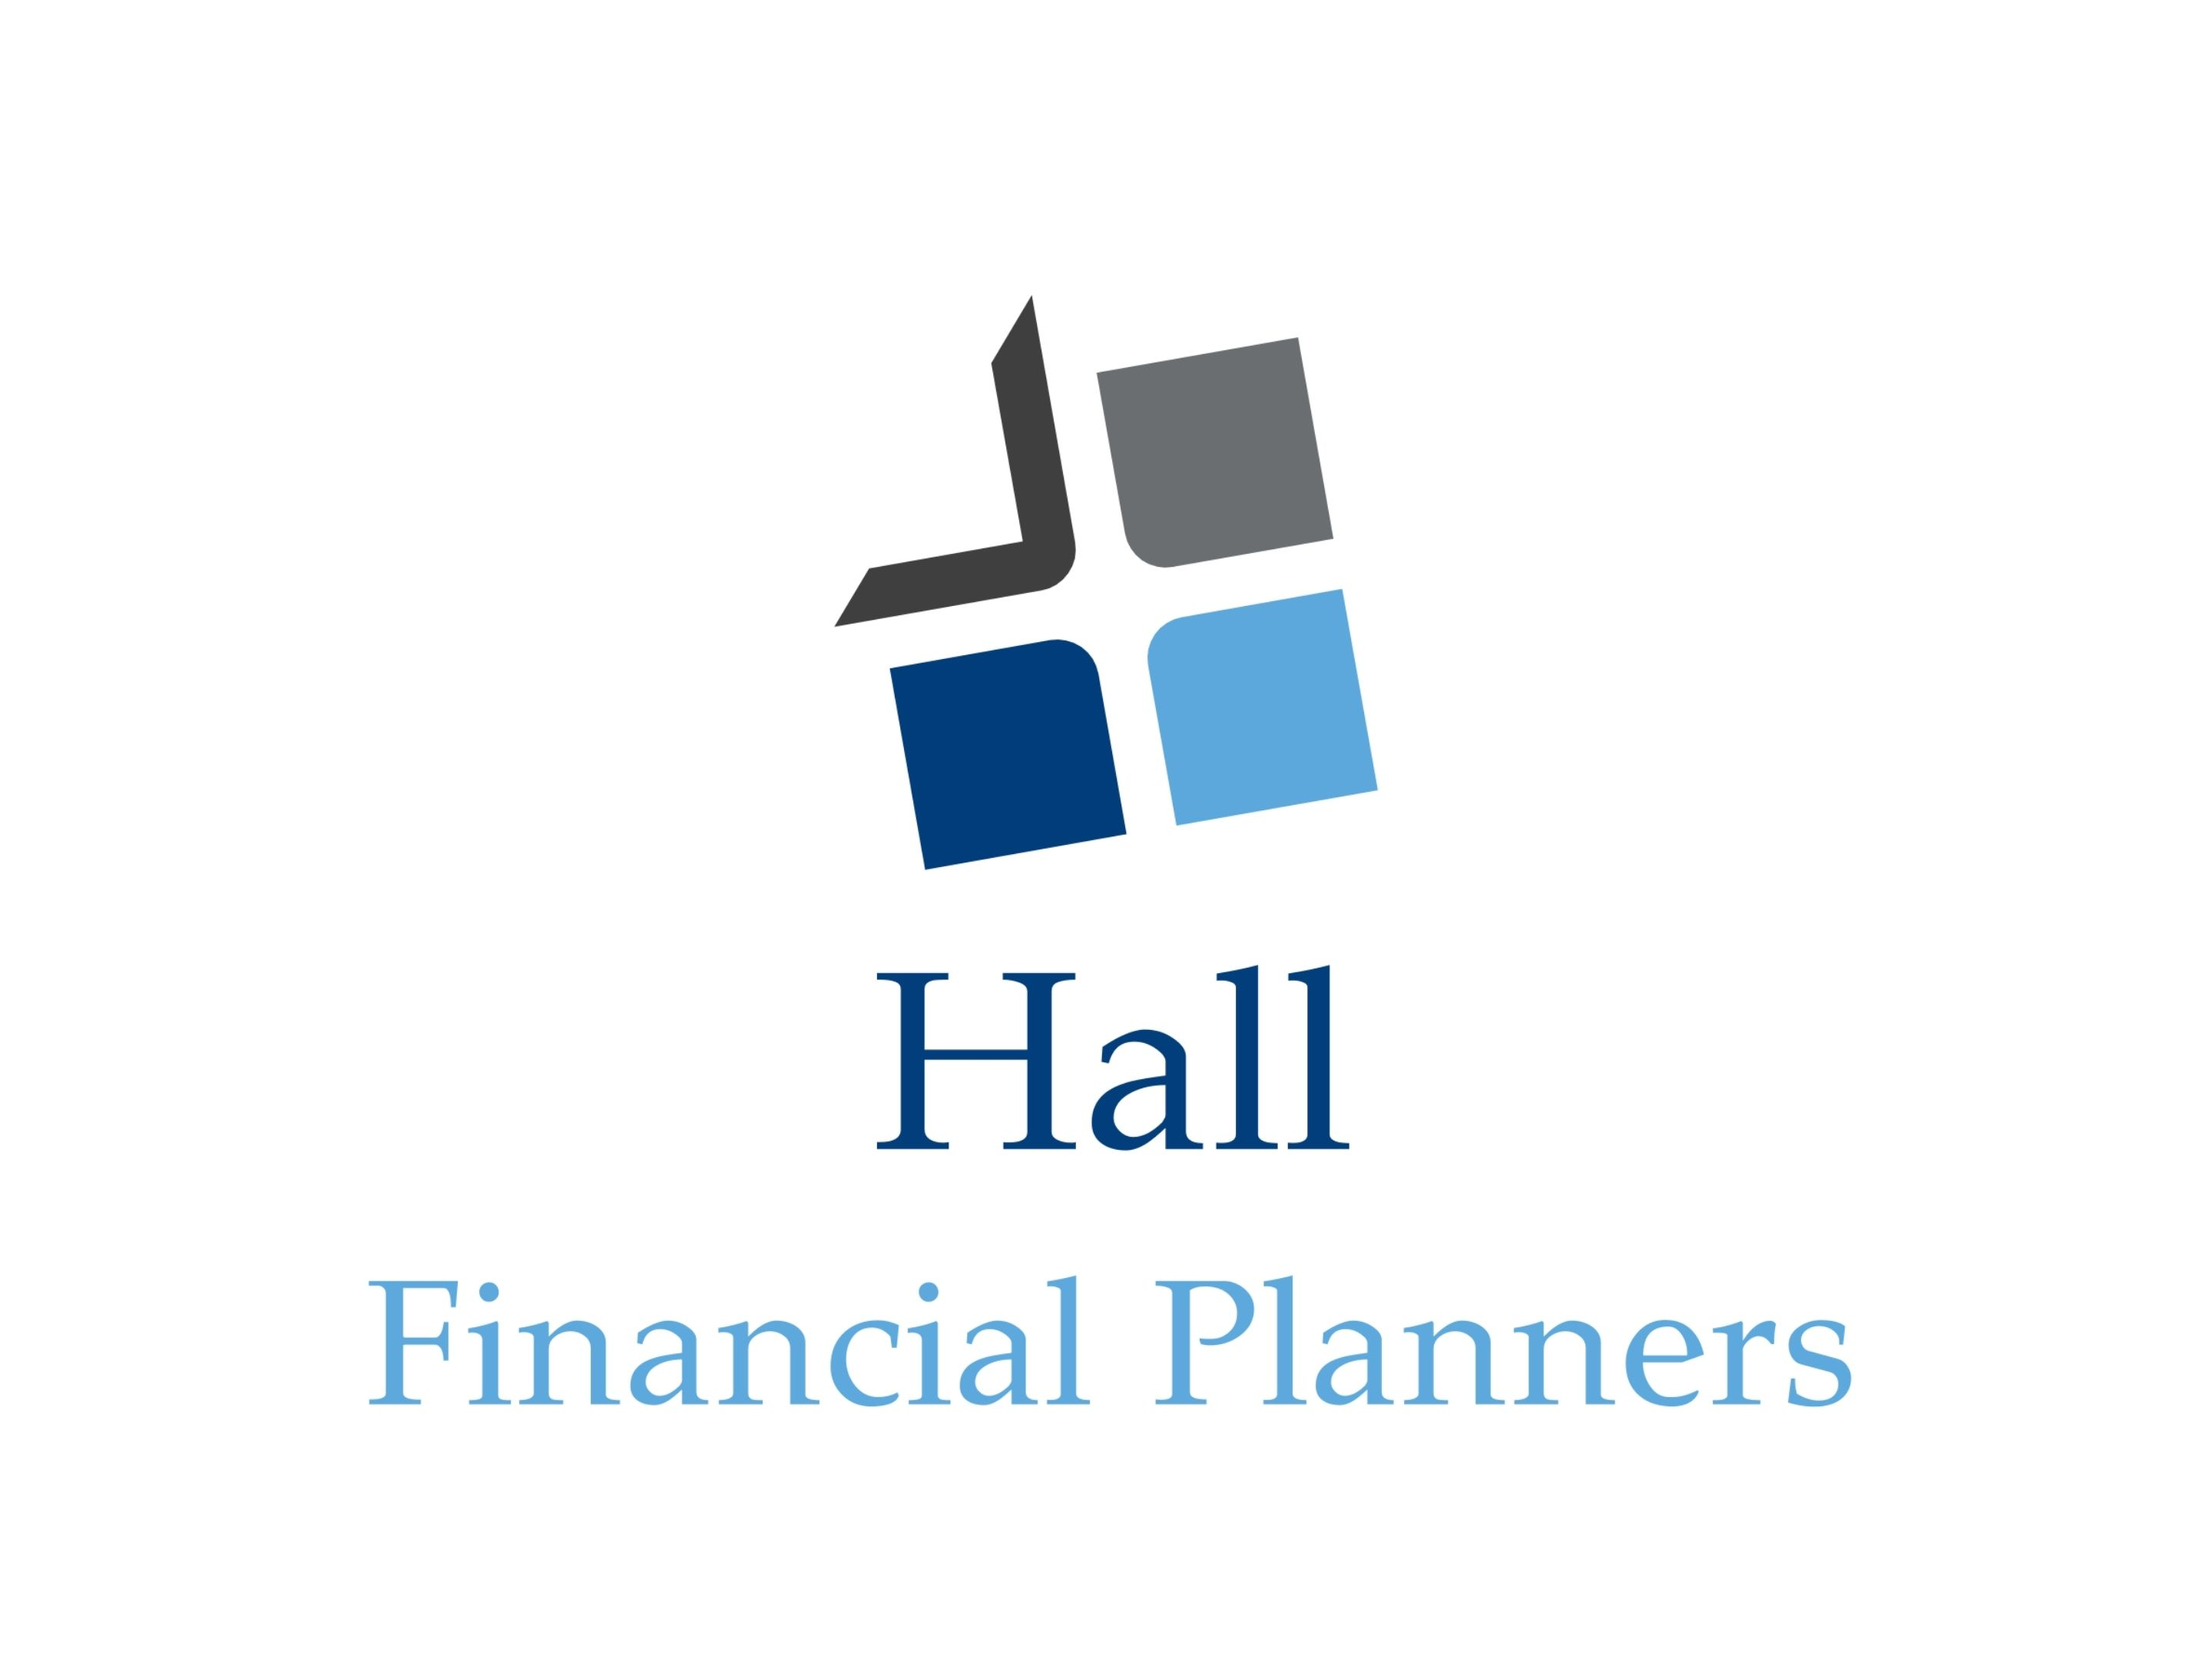 Hall Financial Planners logo